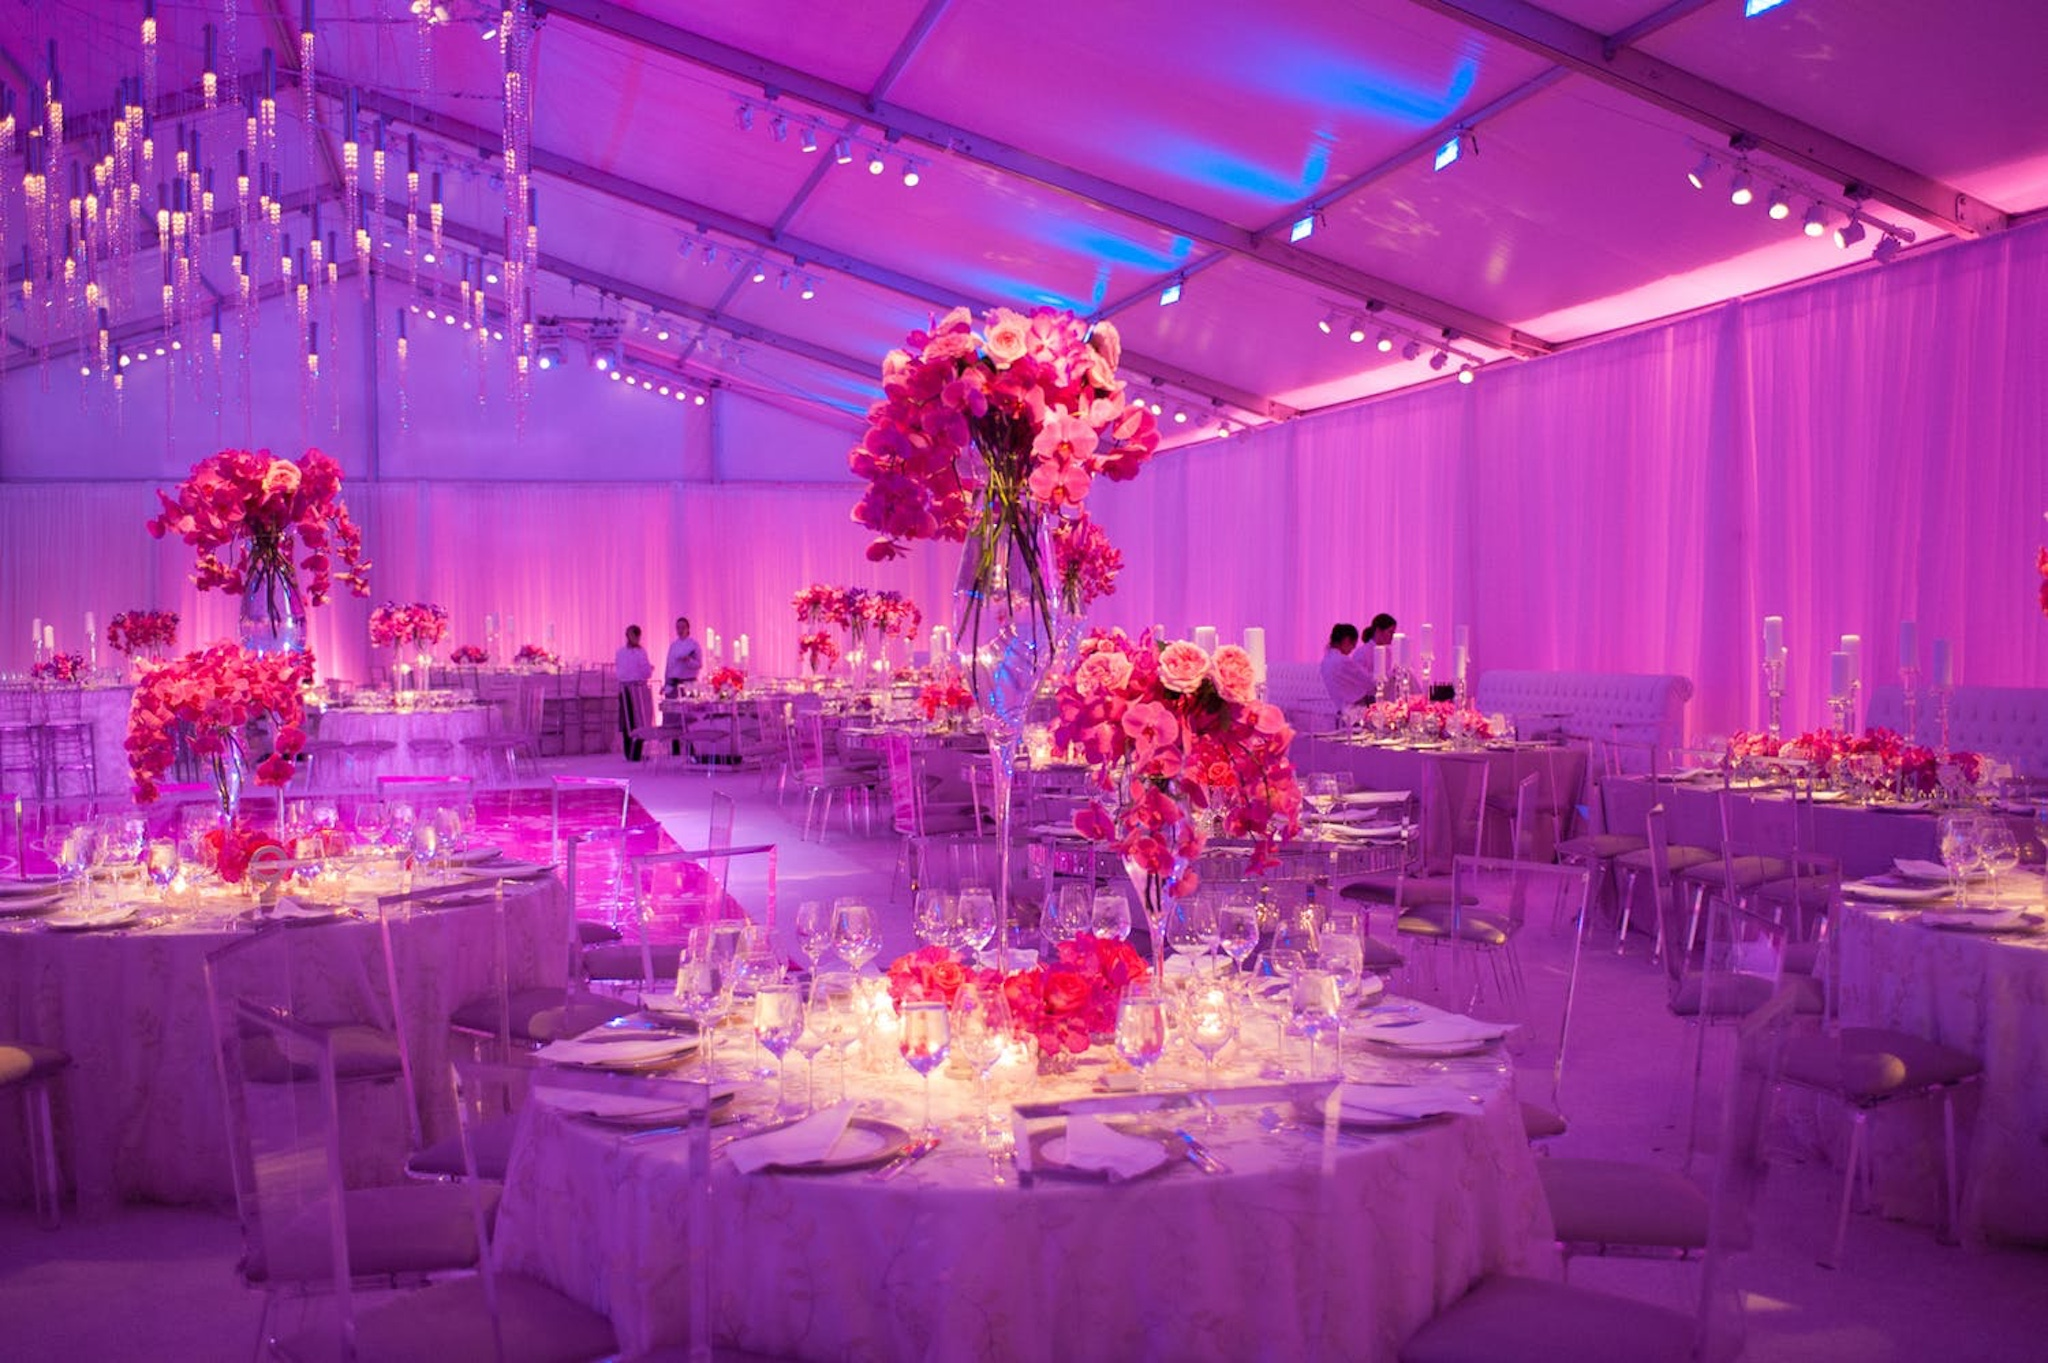 Party with big pink floral centerpieces with pink and purple lighting